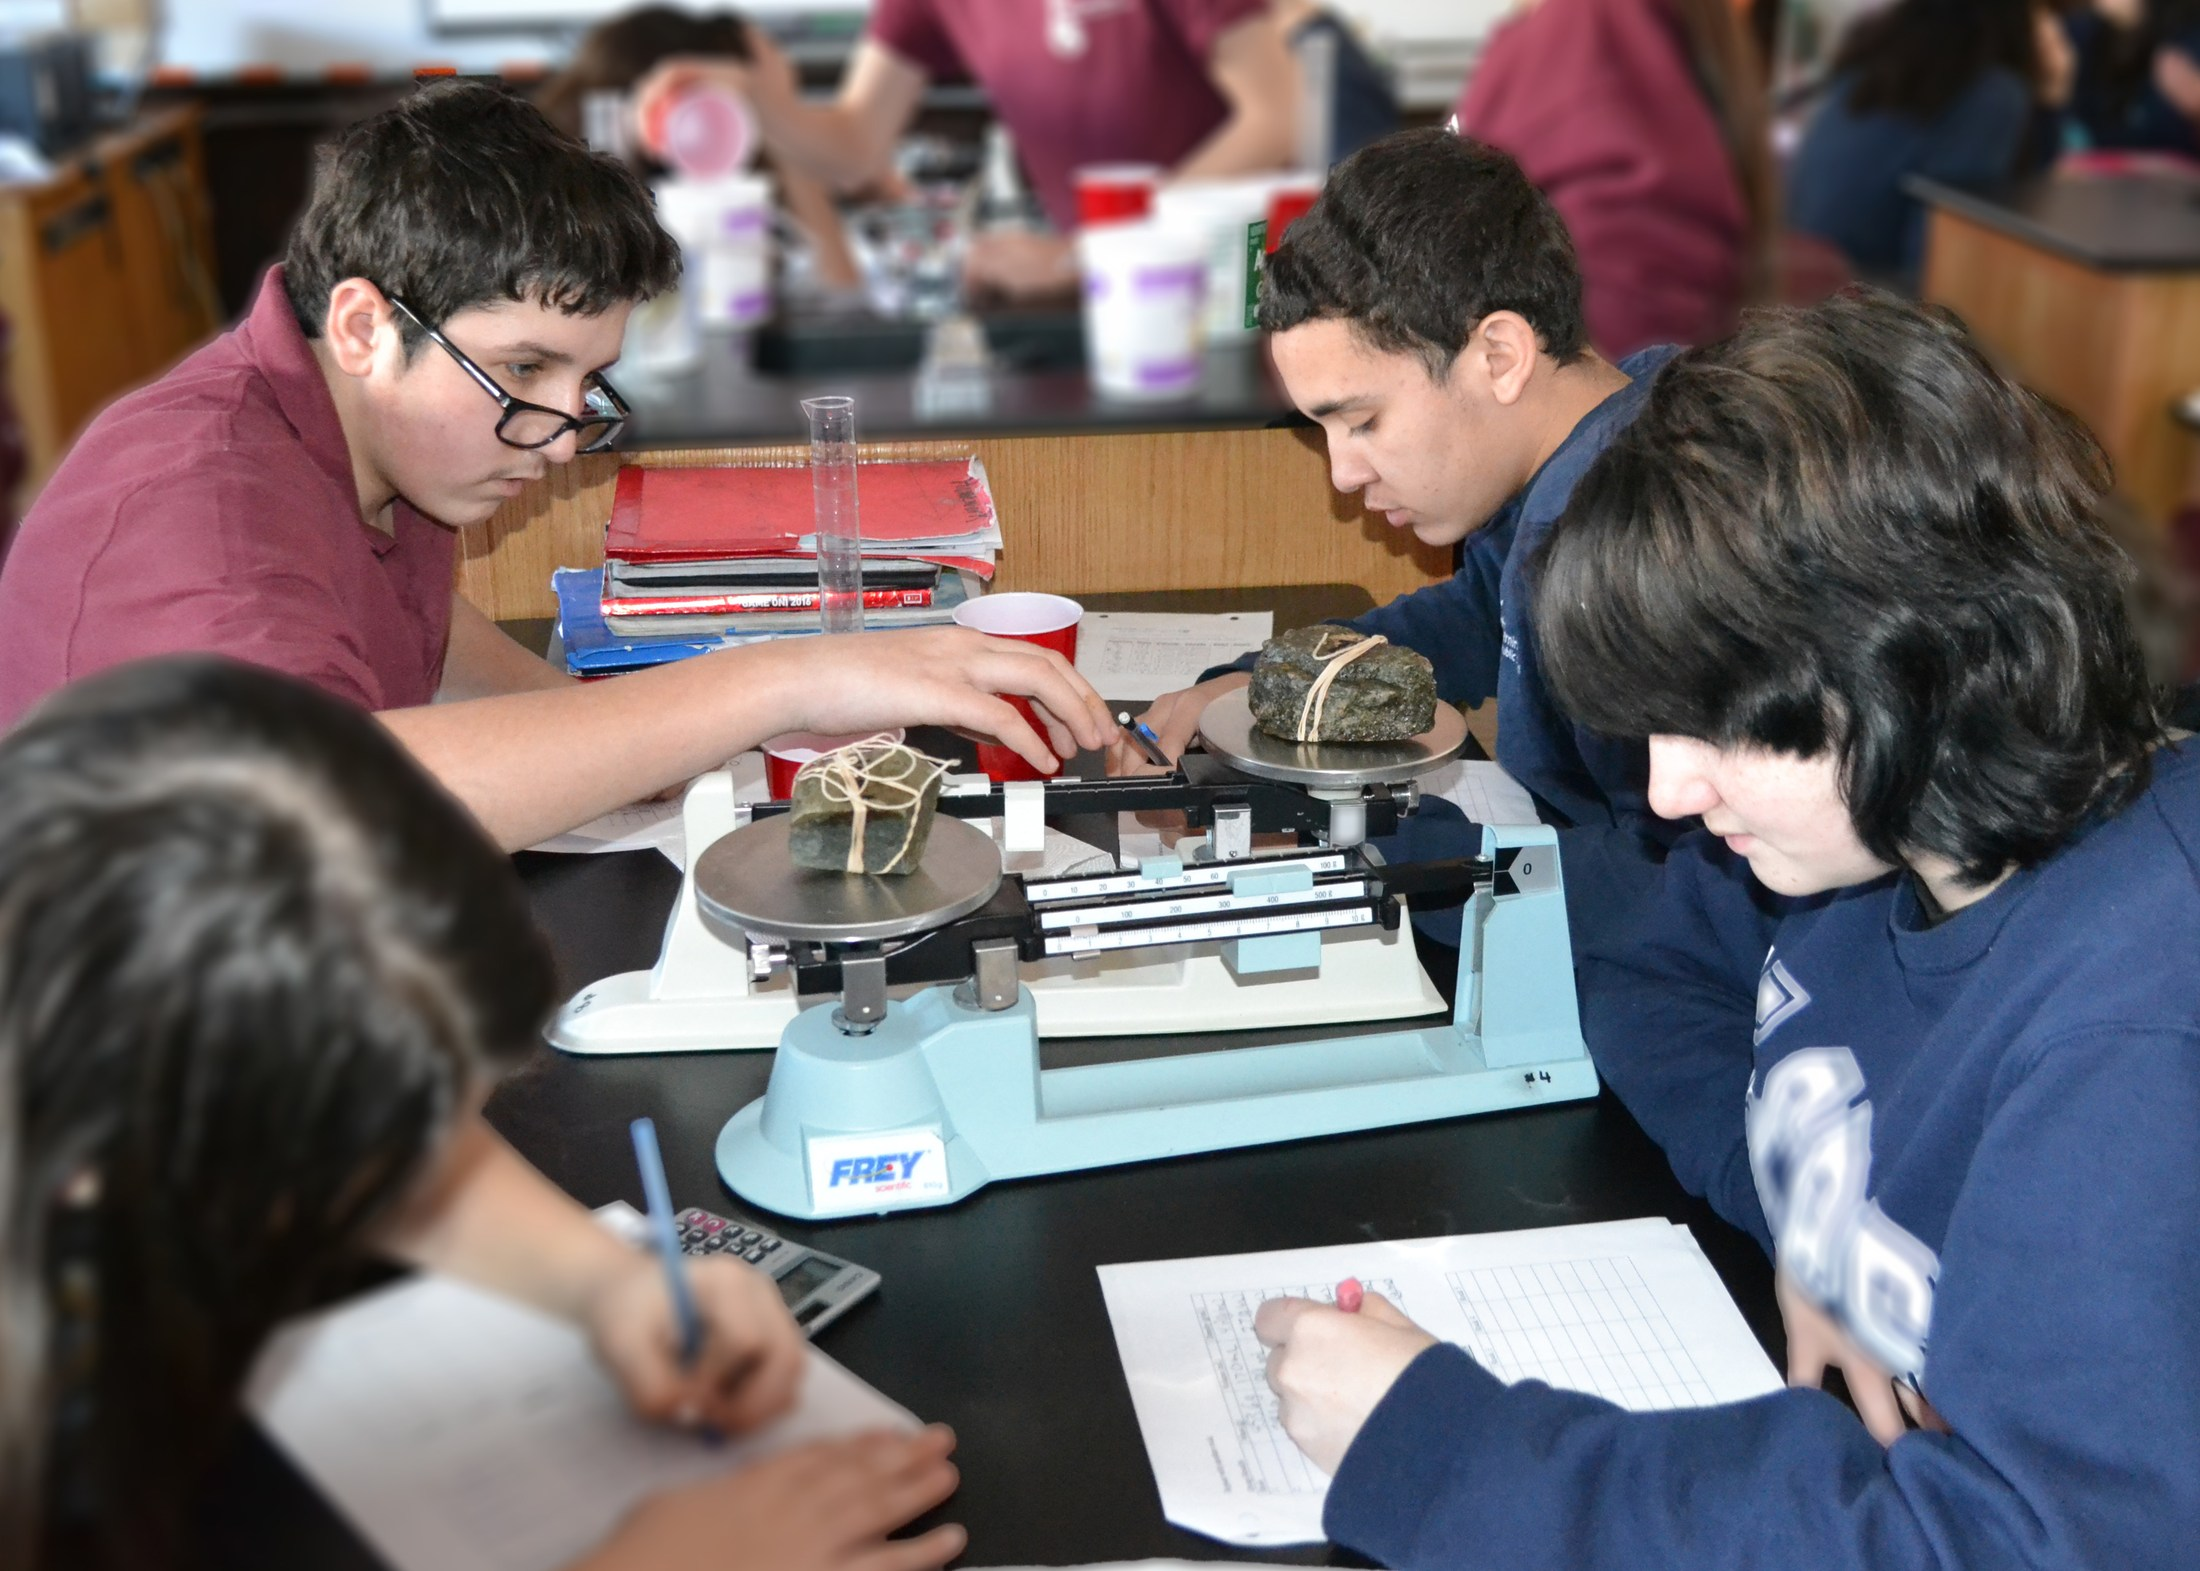 MIddle school students conduct experiments in the science lab.